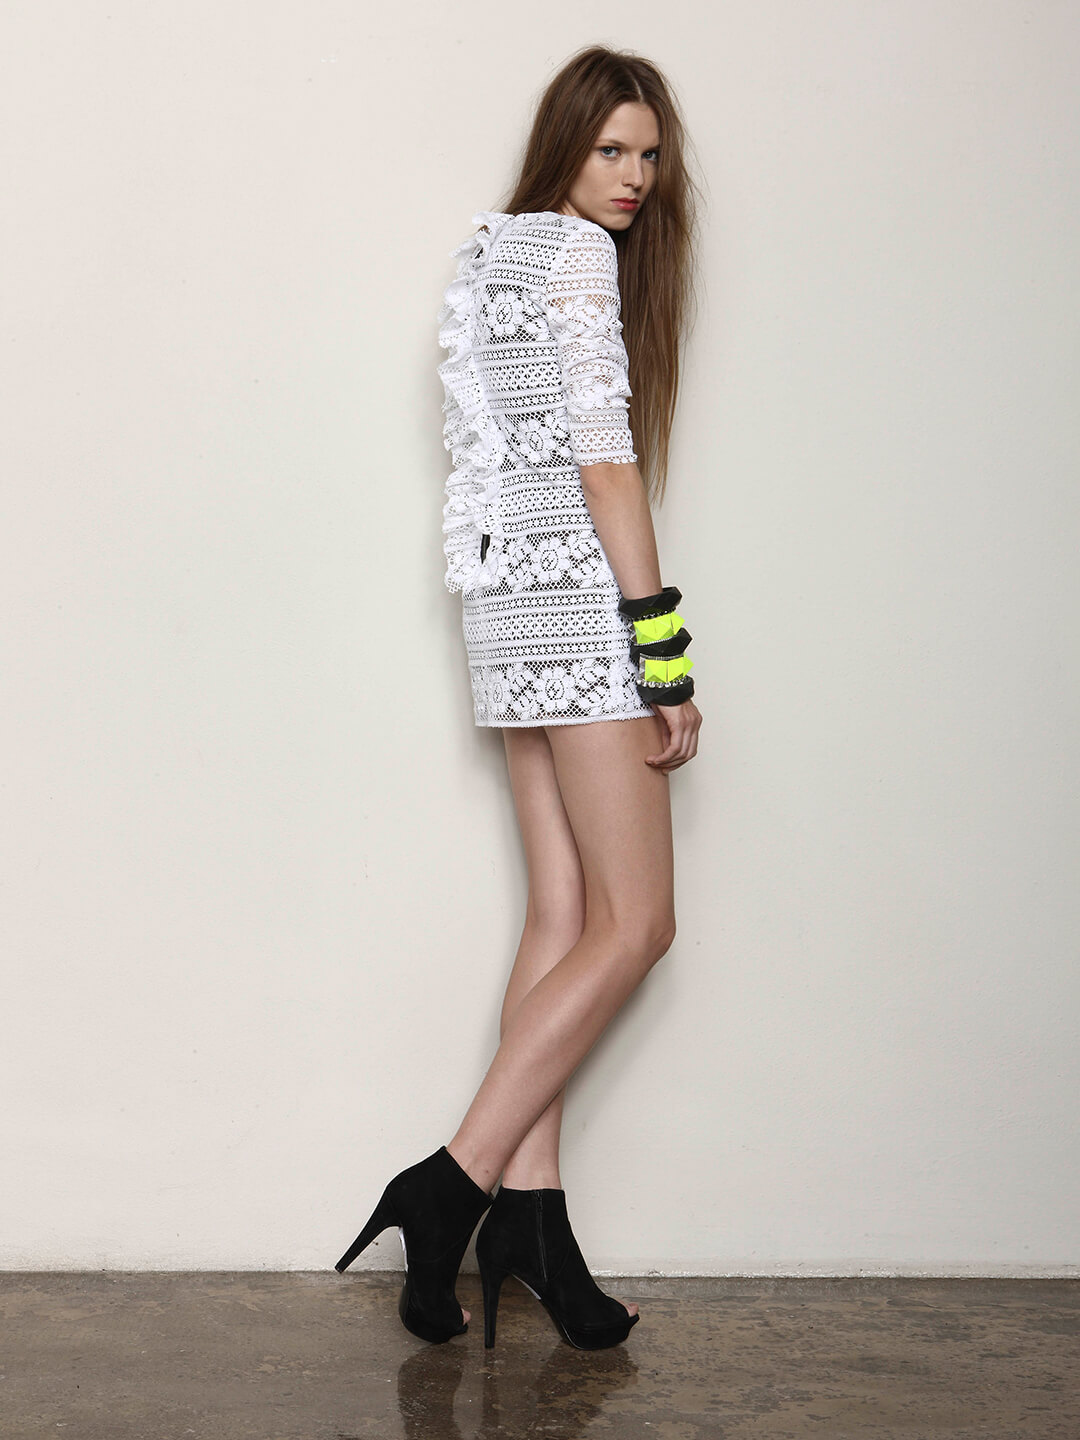 MSGM - 2010 - Woman Spring Summer